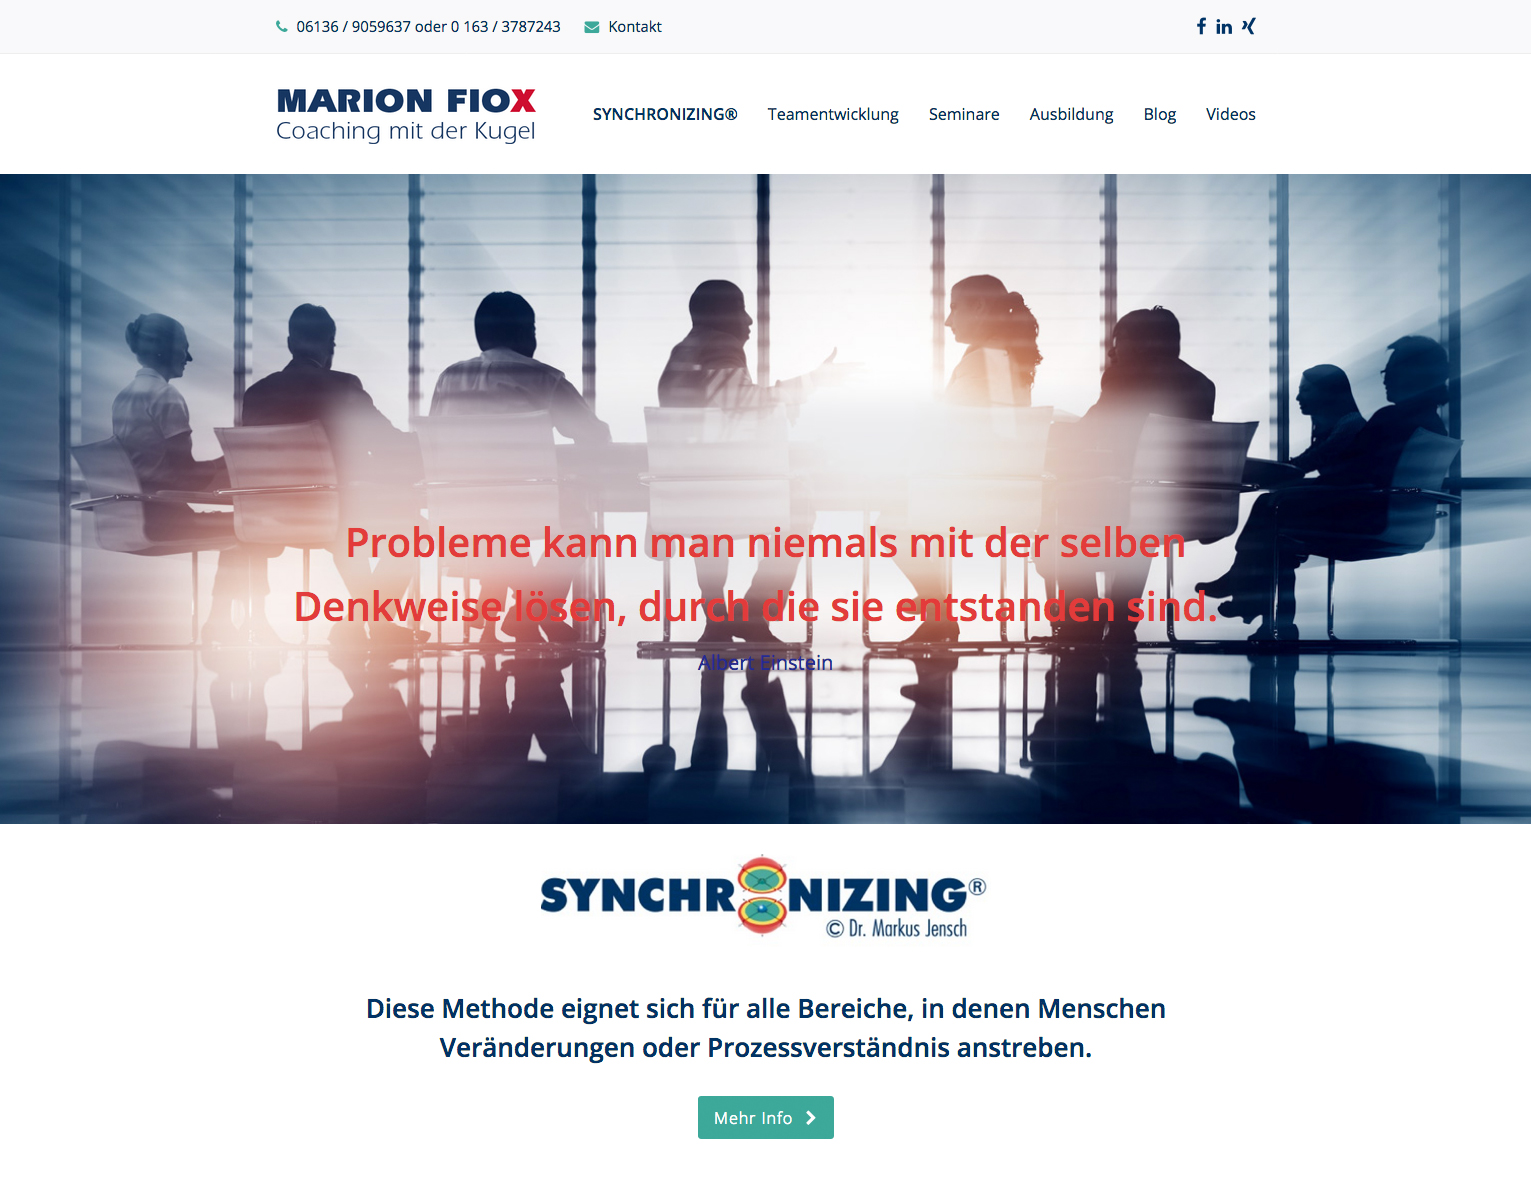 Marion Fiox, Synchronizing-Mainz